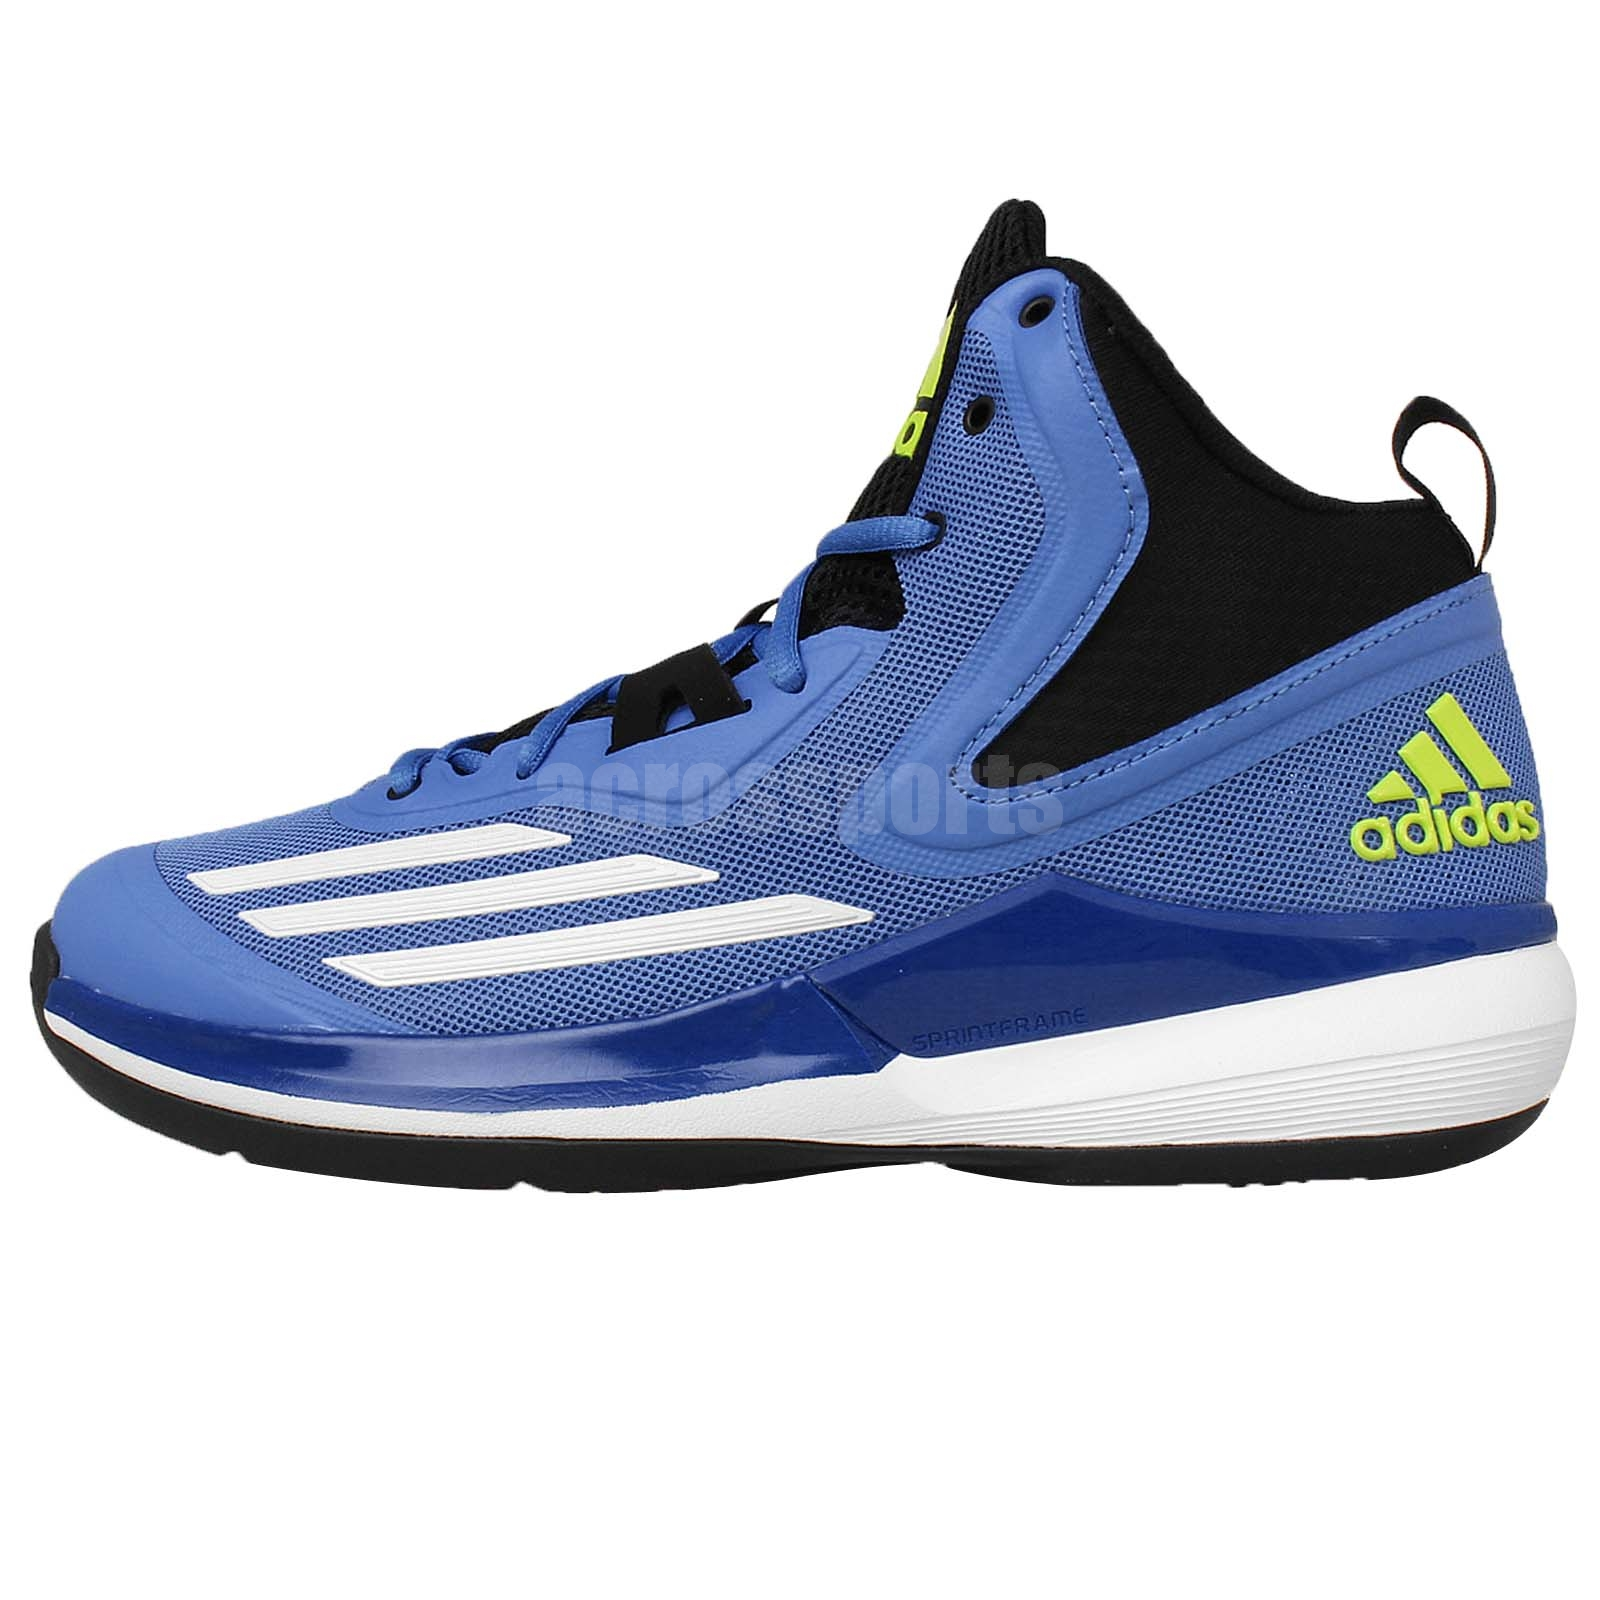 adidas title run blue white 2015 new mens basketball shoes